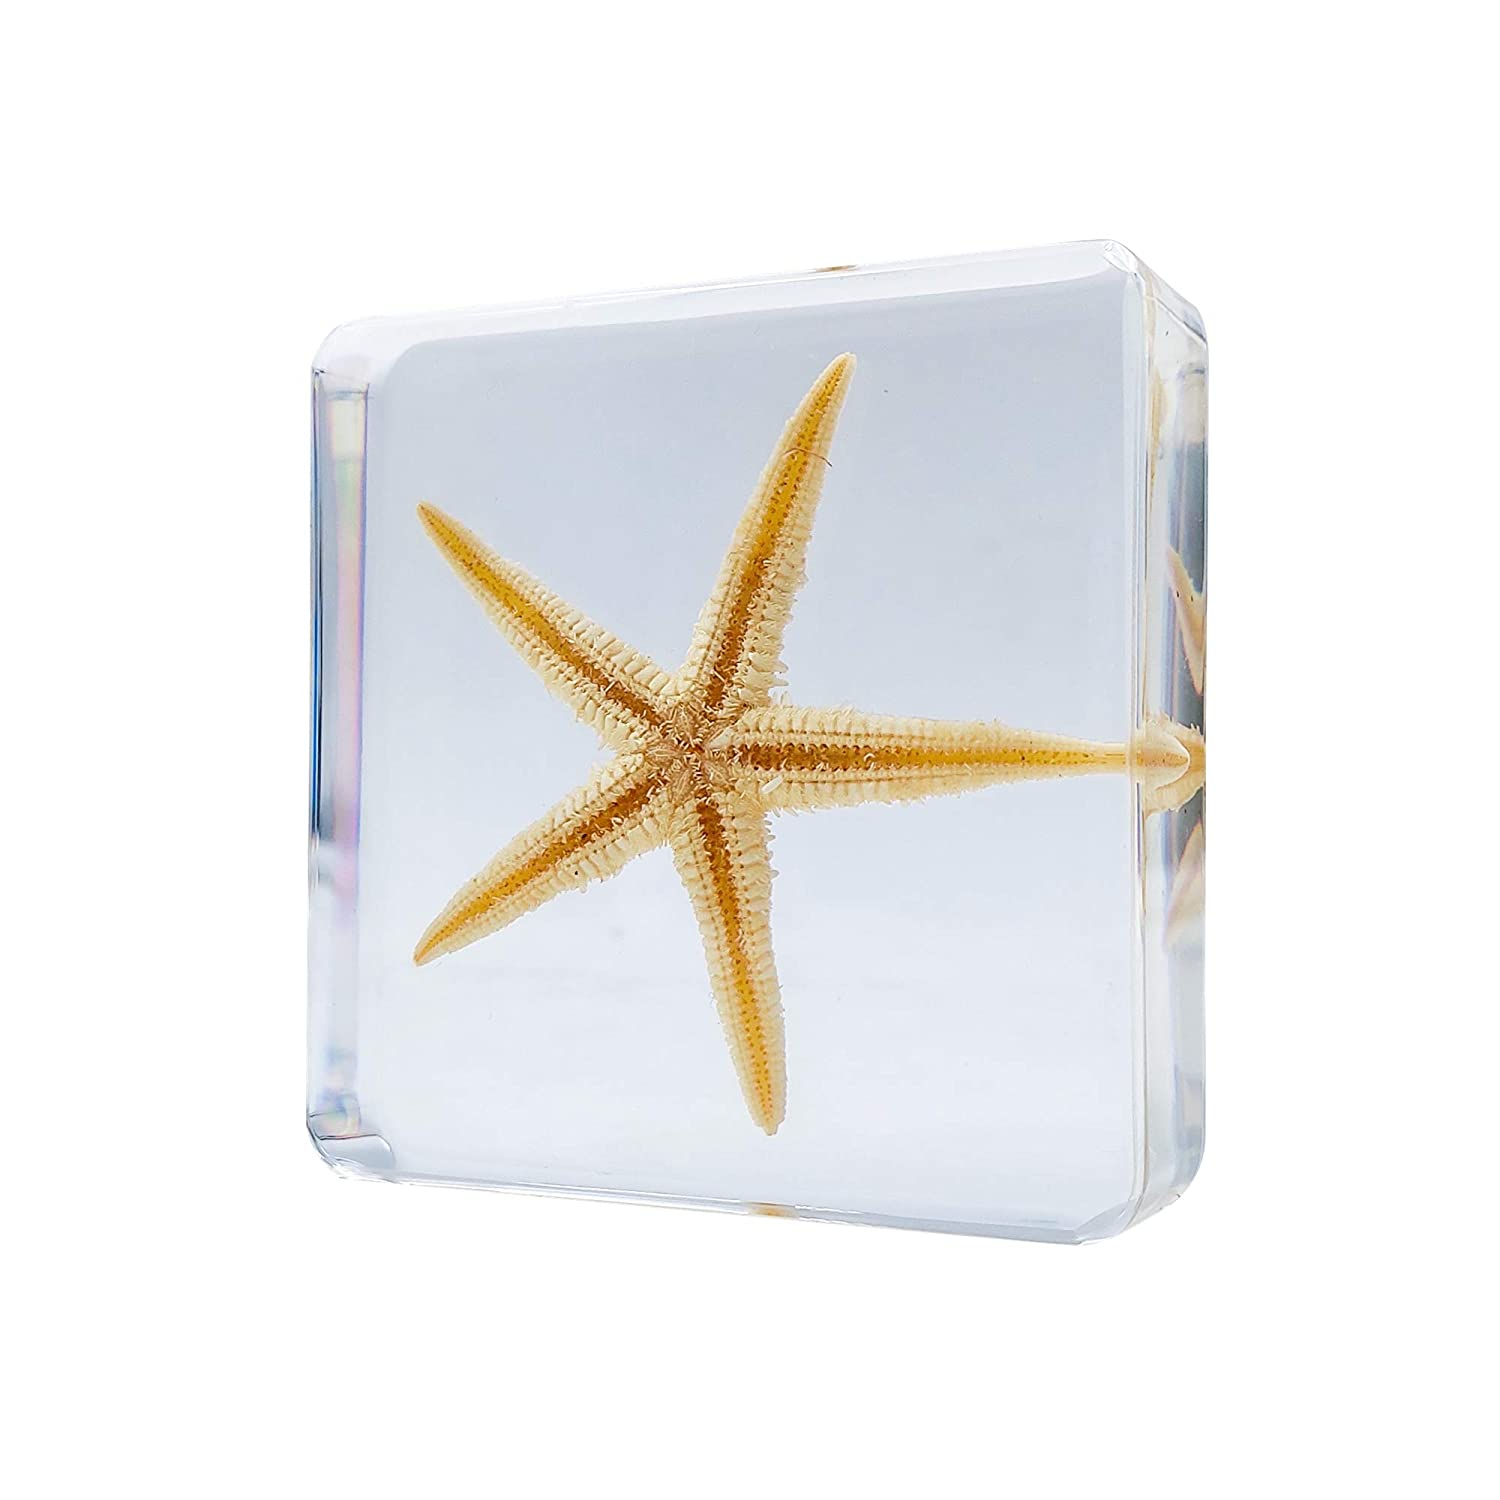 LOOYAR Cute Real Starfish Sea Resin Paperweight Desk Decoration Taxidermy Animals Biology Anatomy Educational Teaching Tool Toy Specimen for Book Office Science Education Classroom